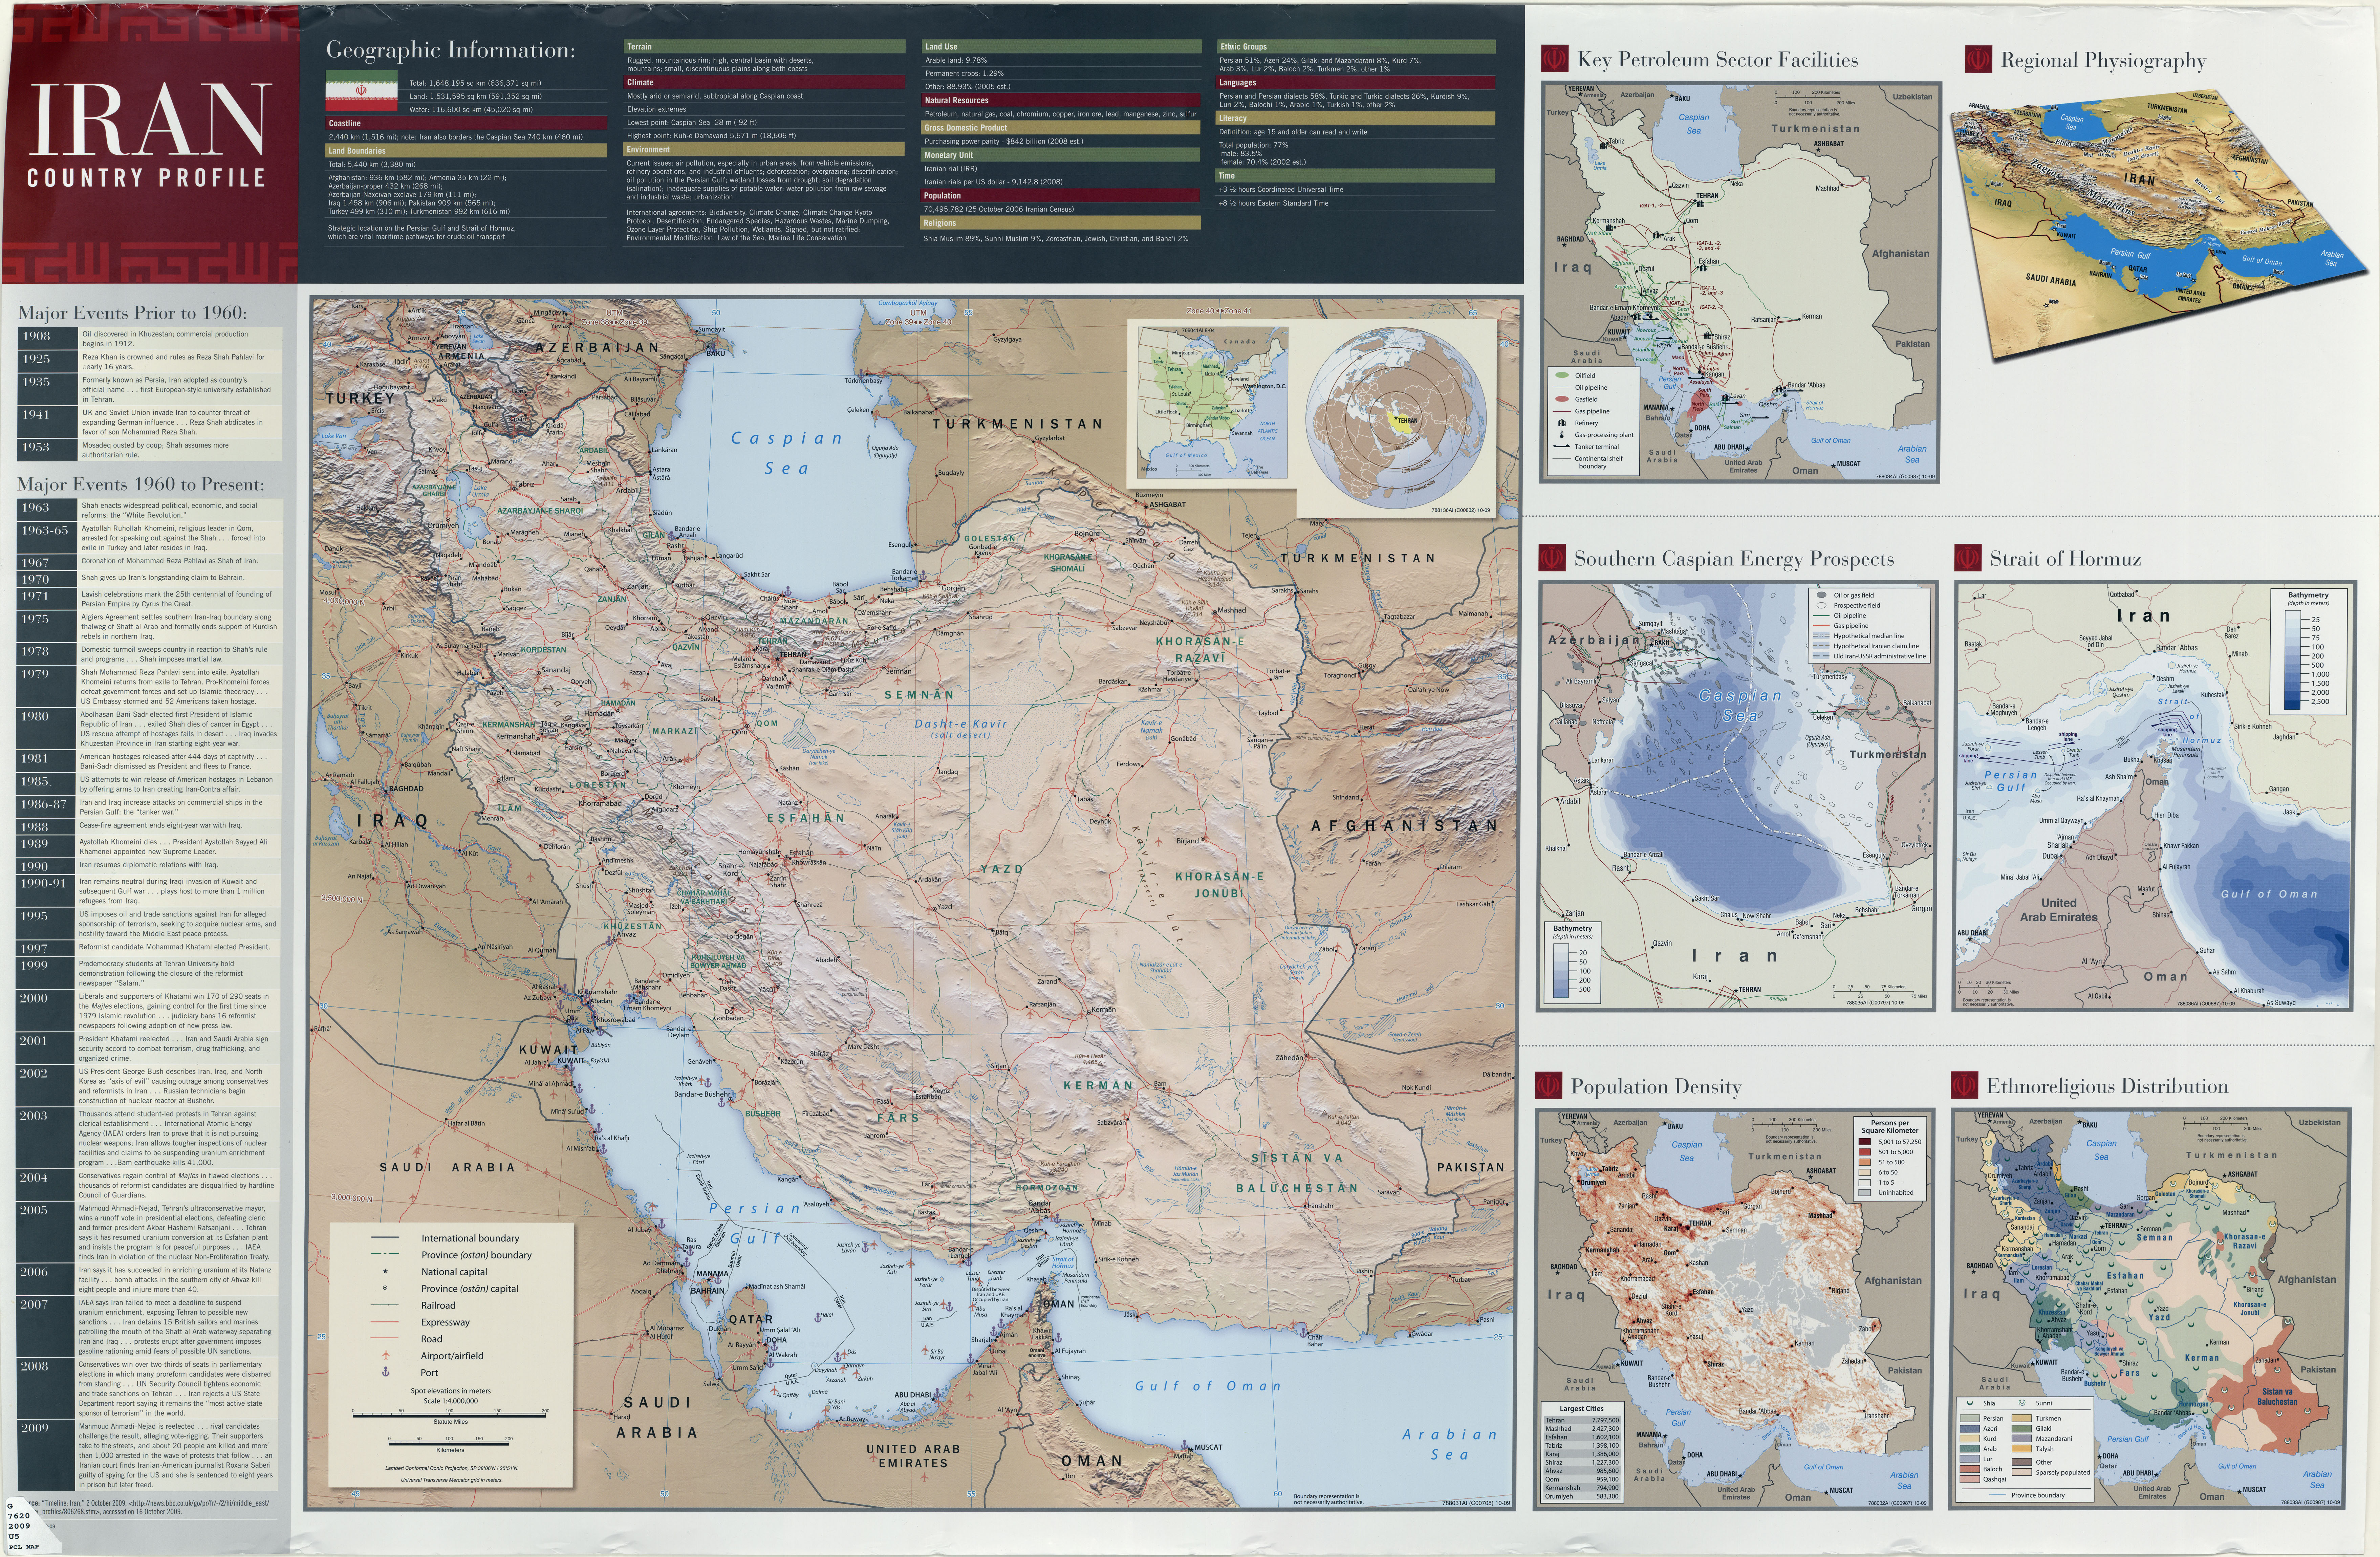 Iran islamic republic maps ecoi iran wall map 2009 iran country profile iran map with insets population density ethnoreligious distribution key petroleum sector facilities gumiabroncs Image collections